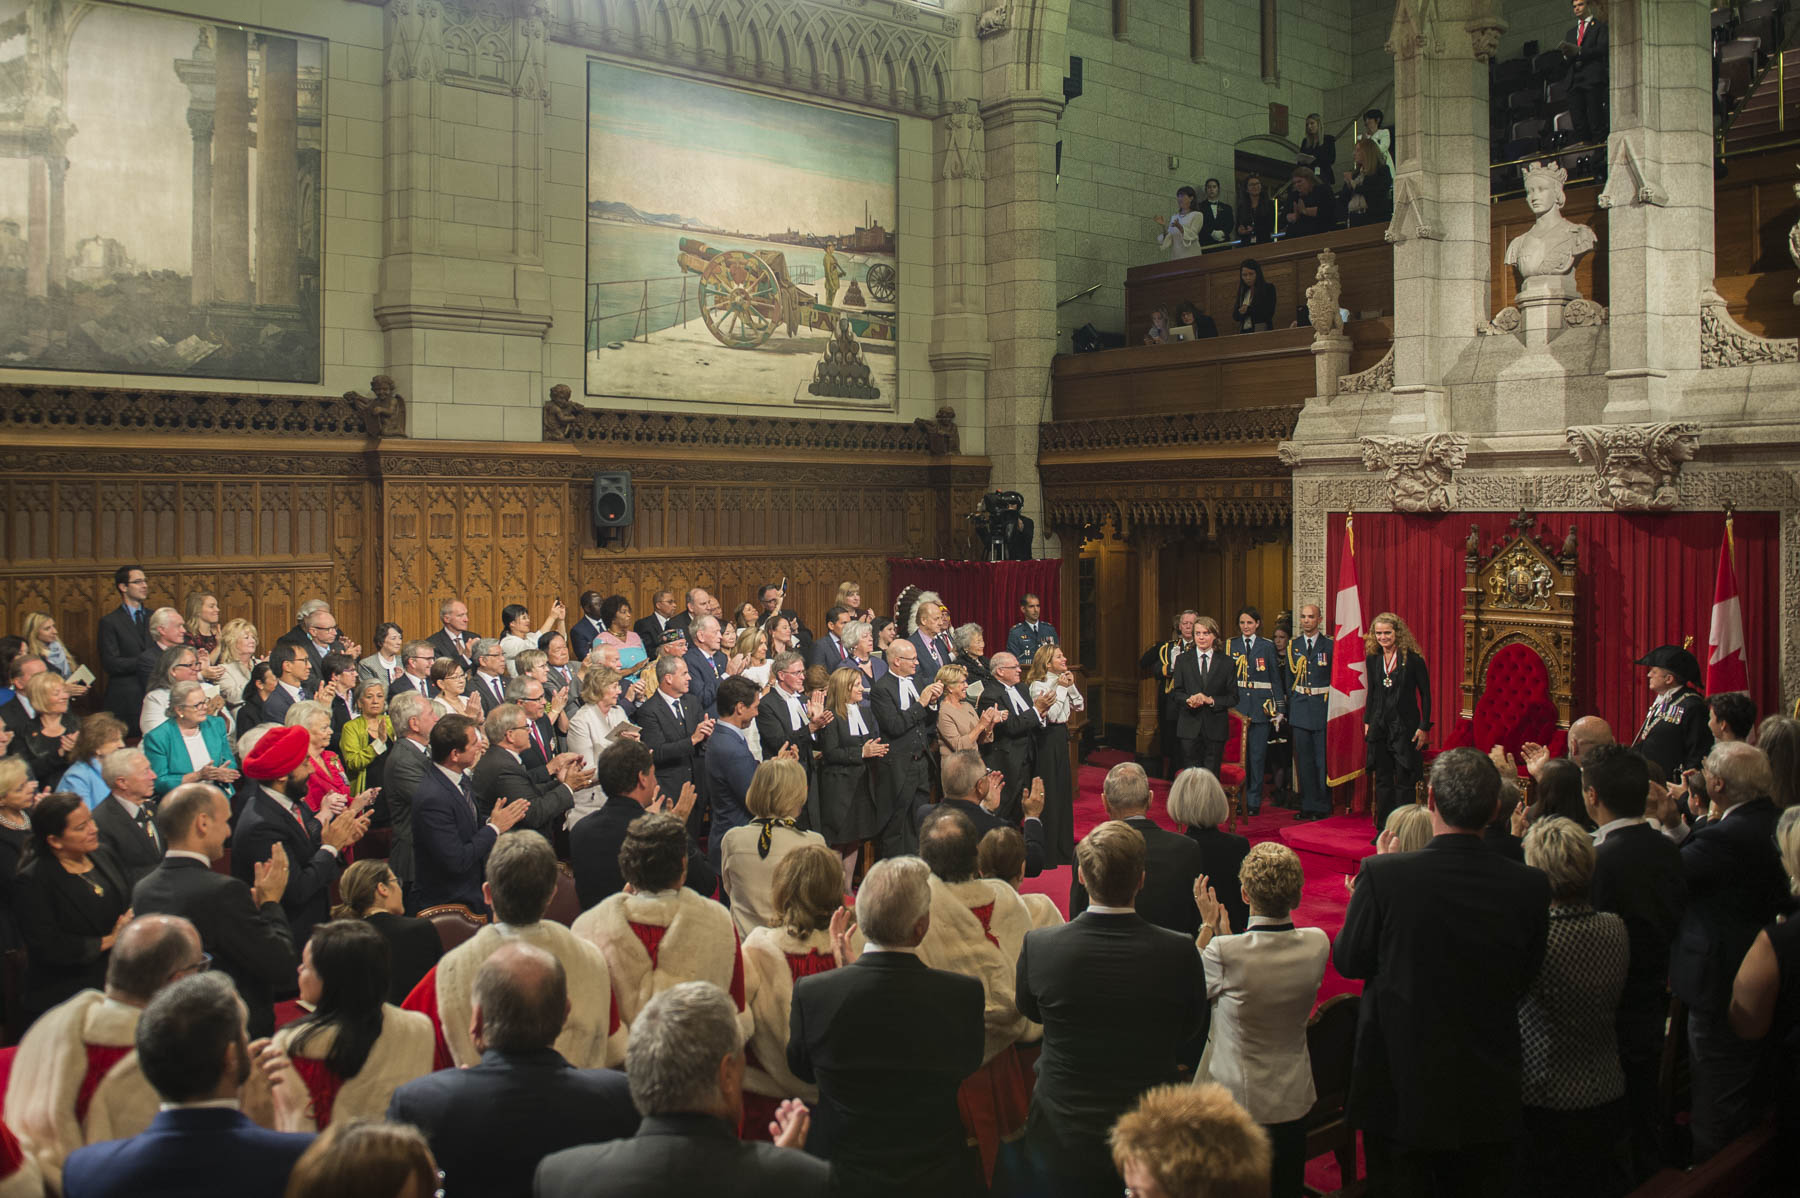 Ms. Julie Payette became the 29th Governor General of Canada during the installation ceremony held inside the Senate Chamber.